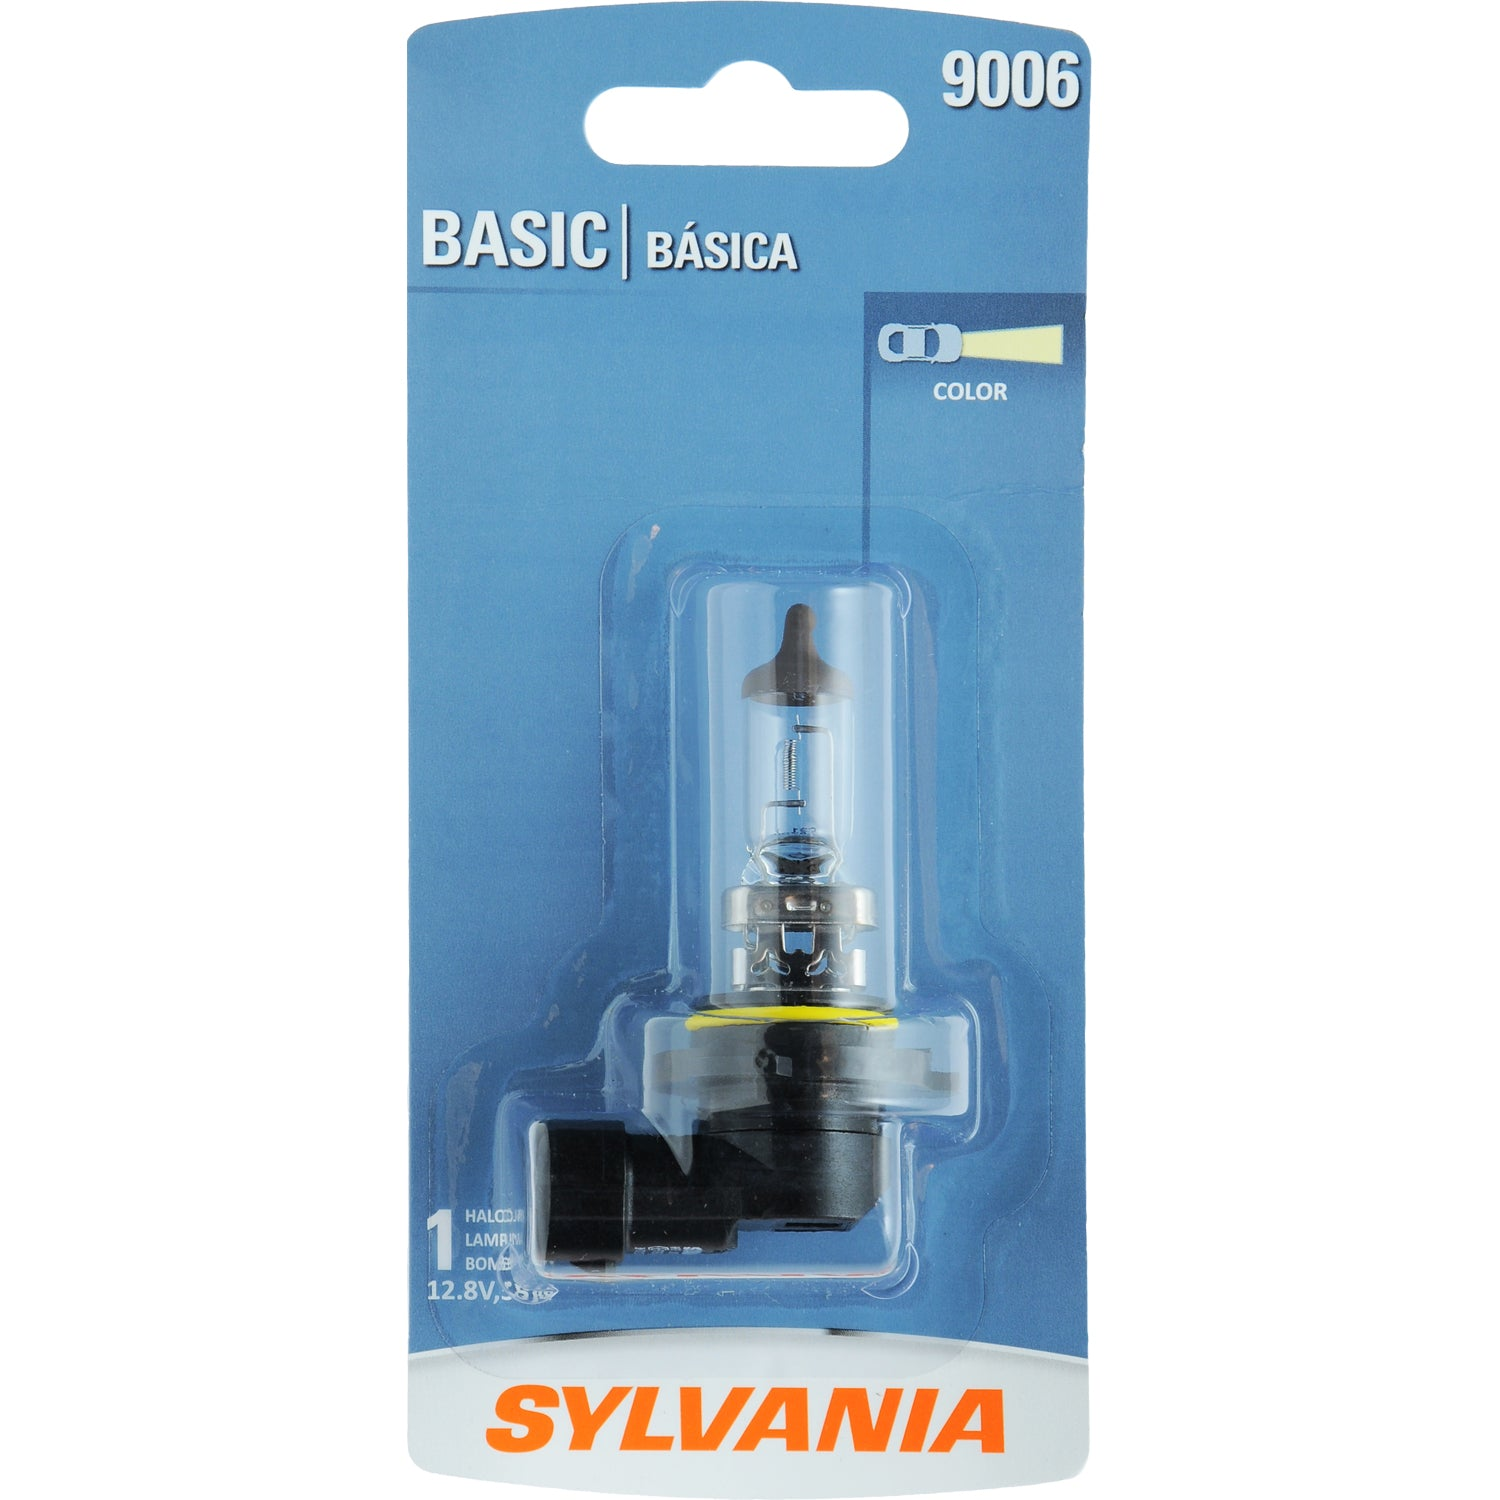 SYLVANIA 9006 Basic Halogen Headlight Automotive Bulb